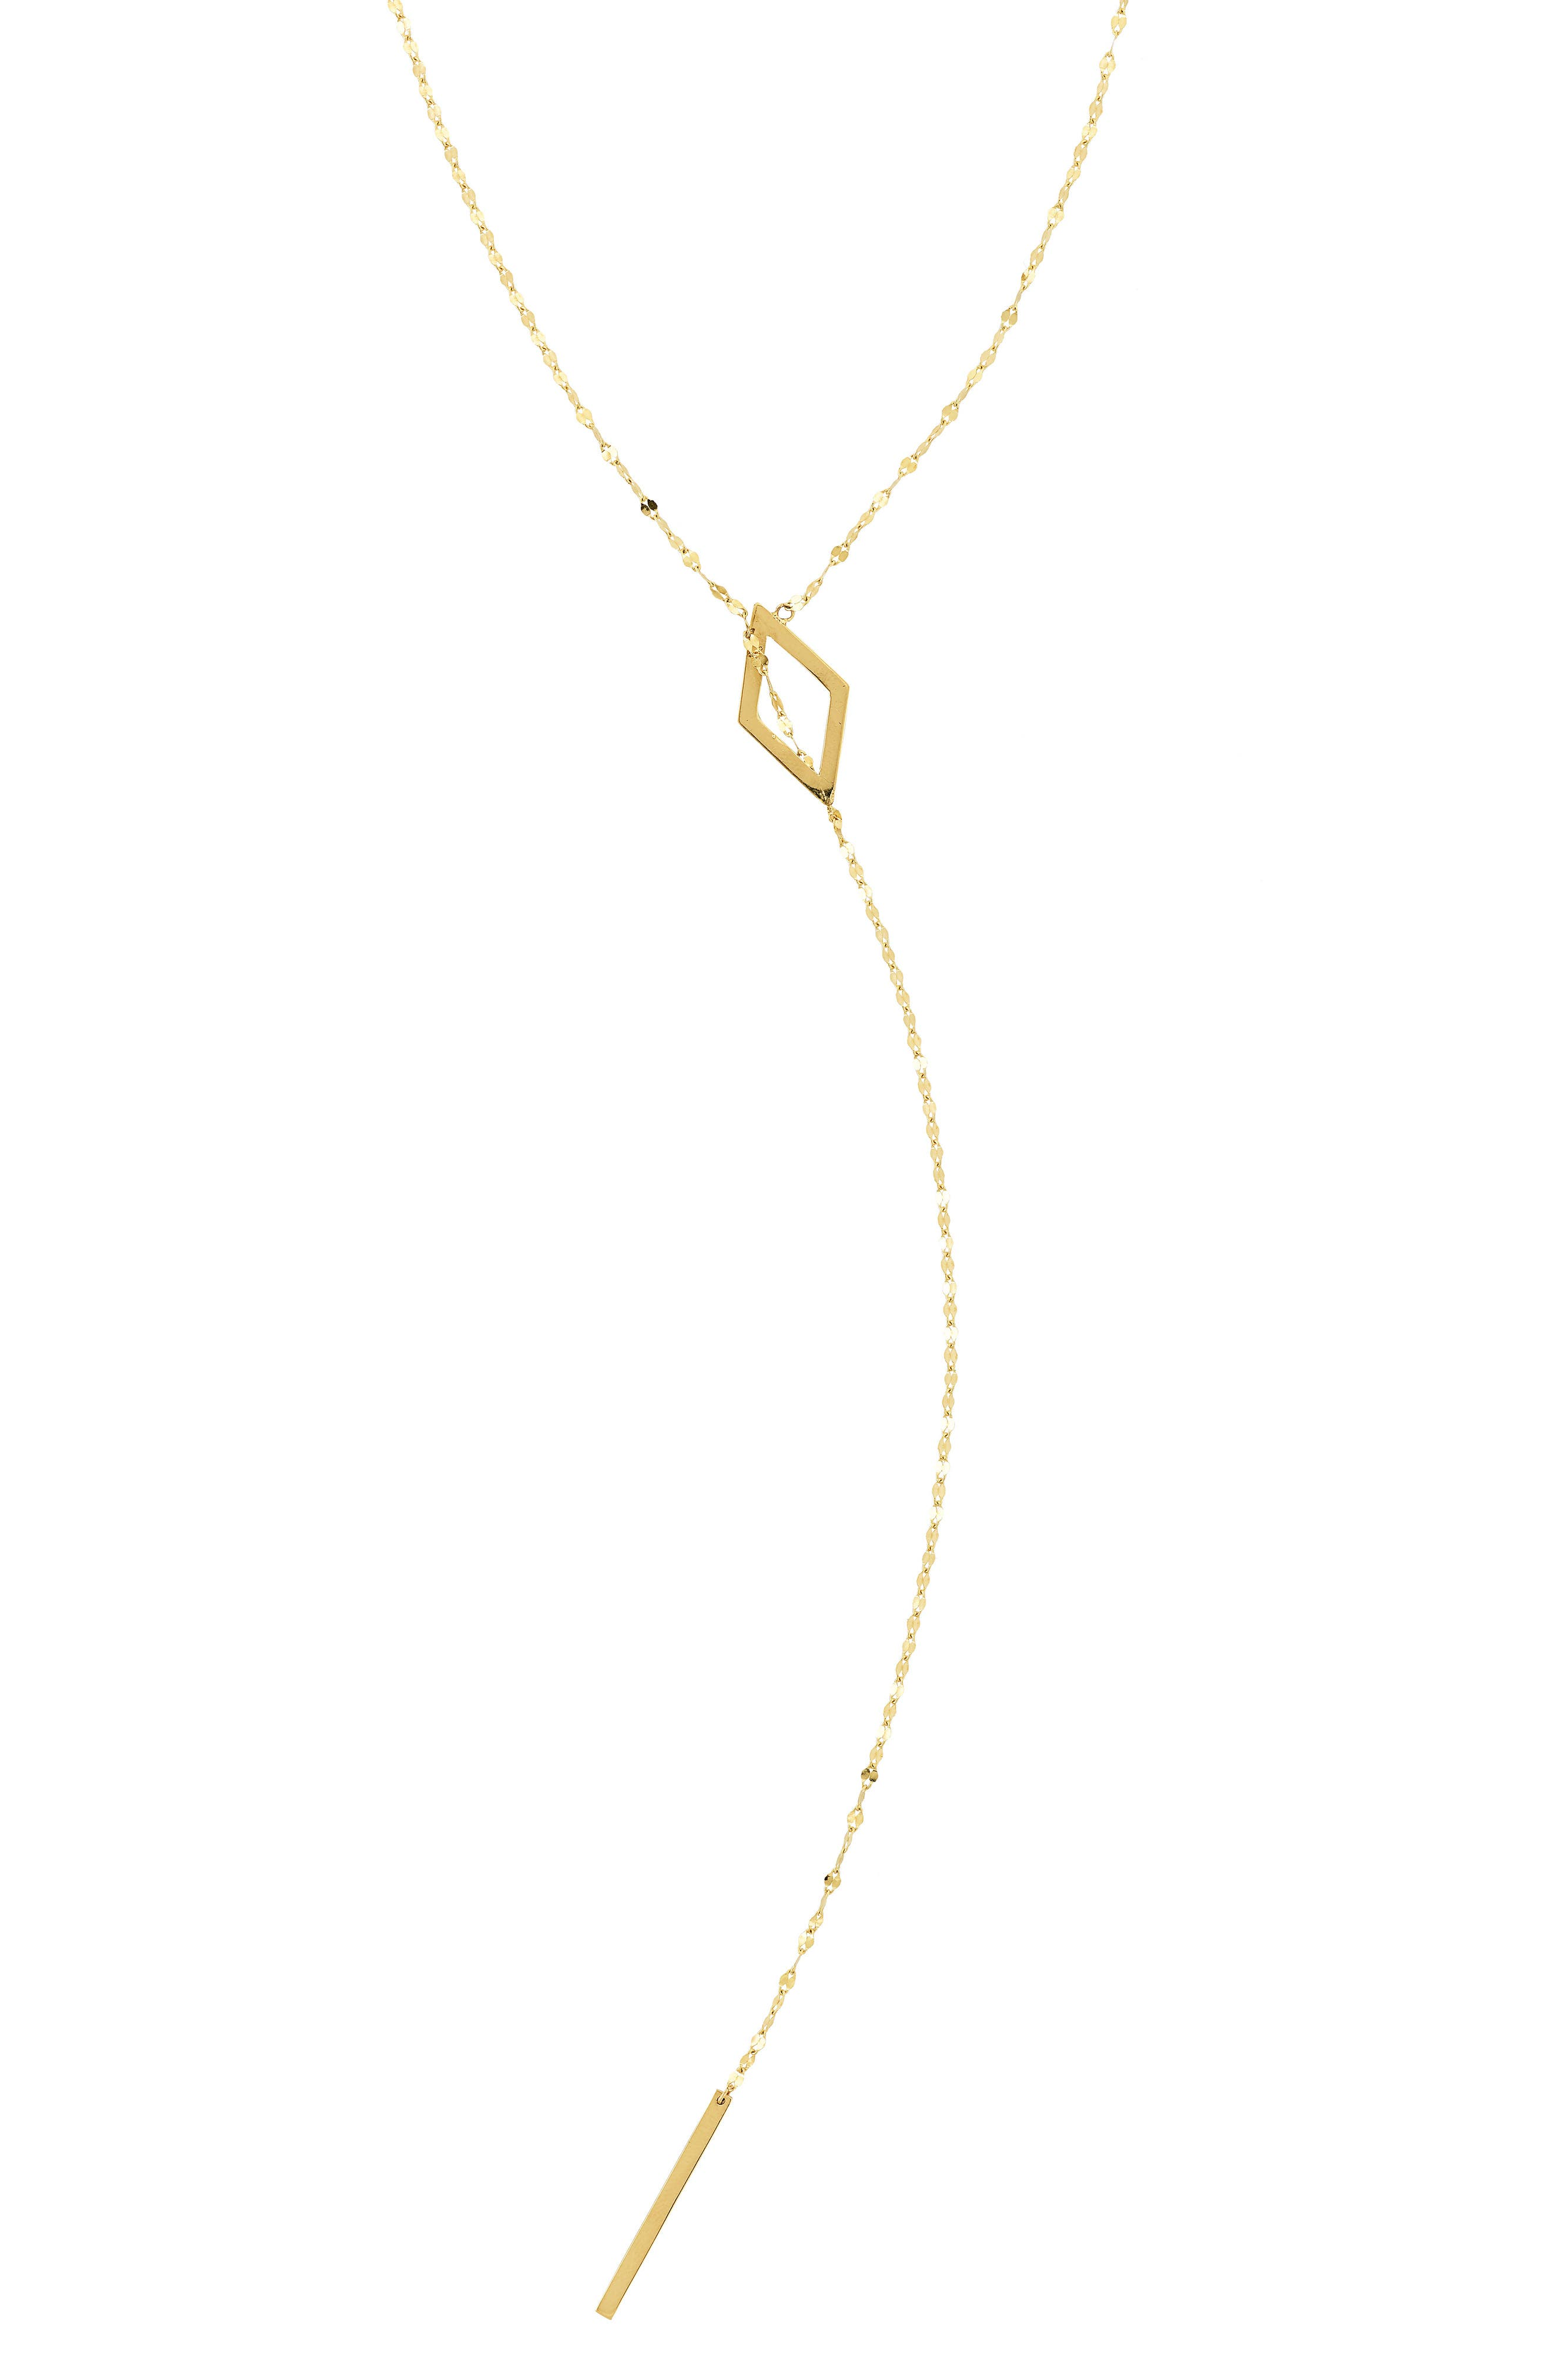 Lariat Necklace,                             Main thumbnail 1, color,